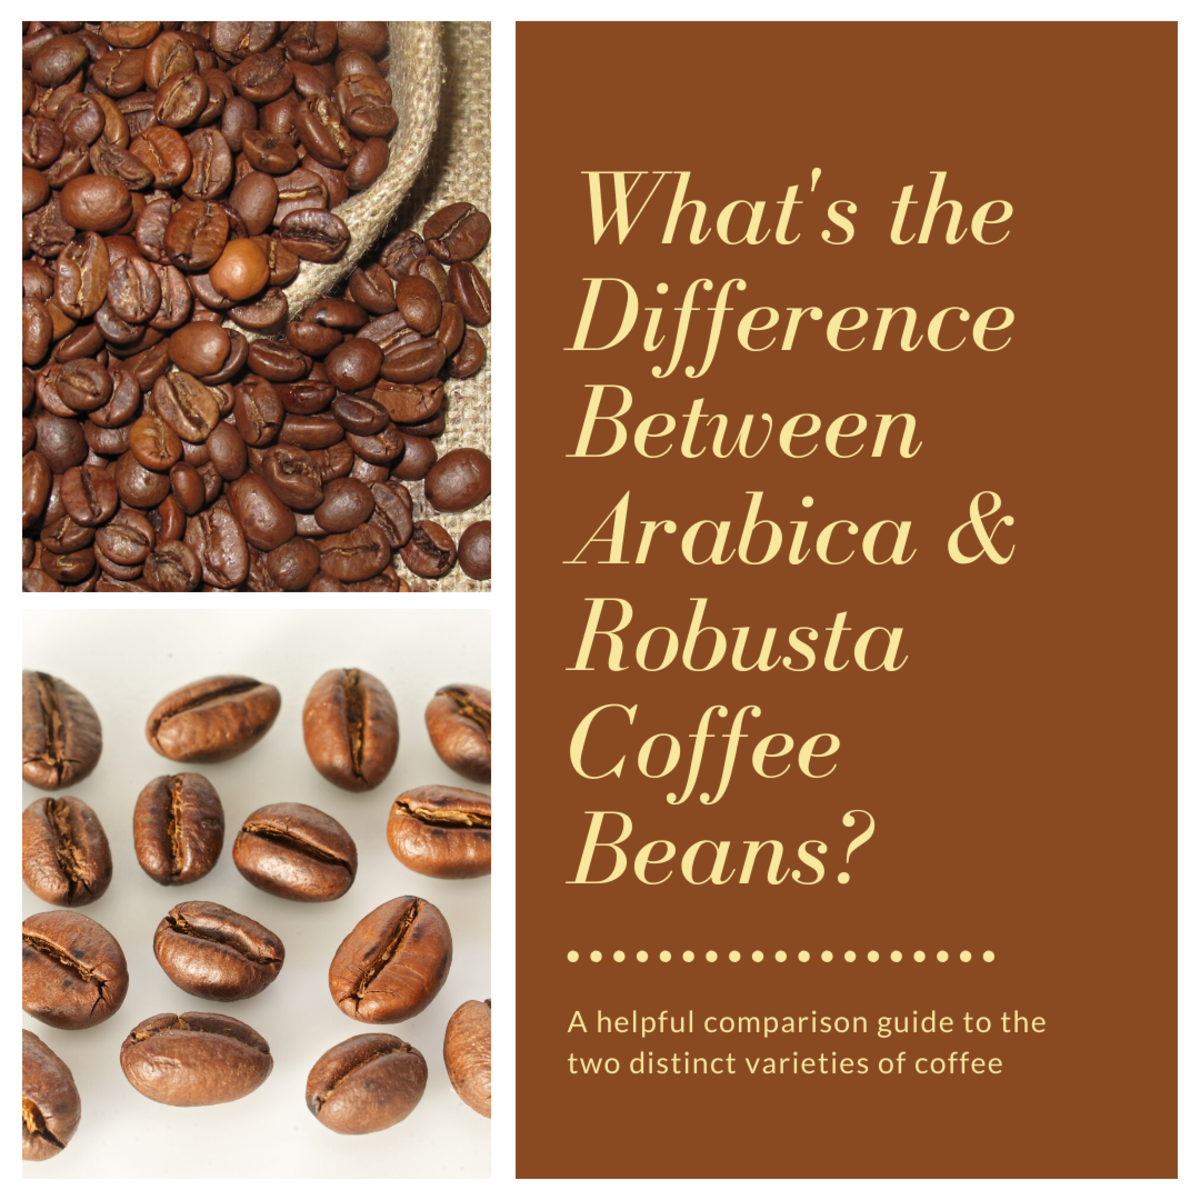 This article will break down the major differences between the two distinct varieties of coffee.